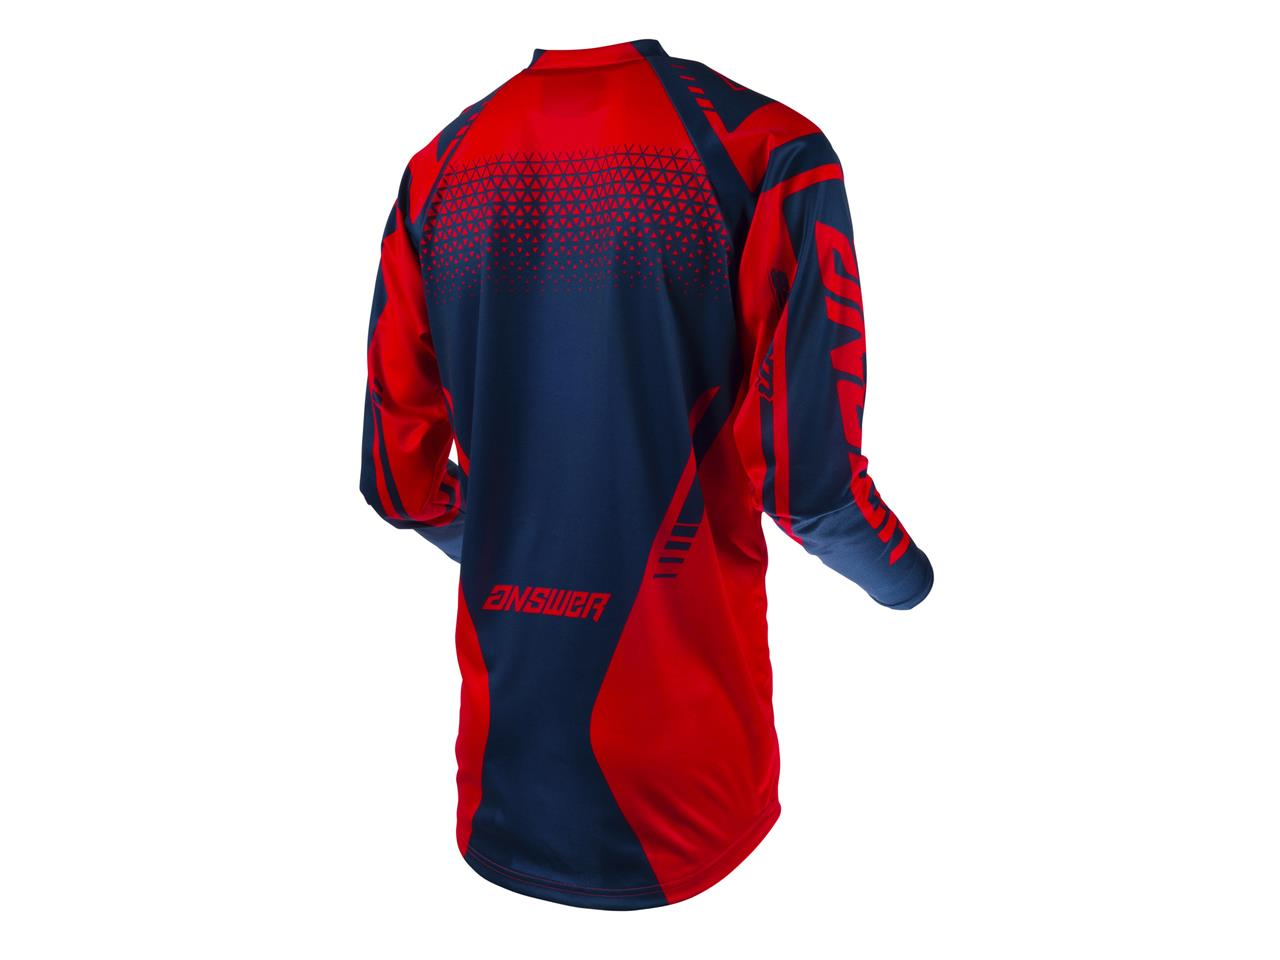 Maillot answer syncron drift red midnight 2